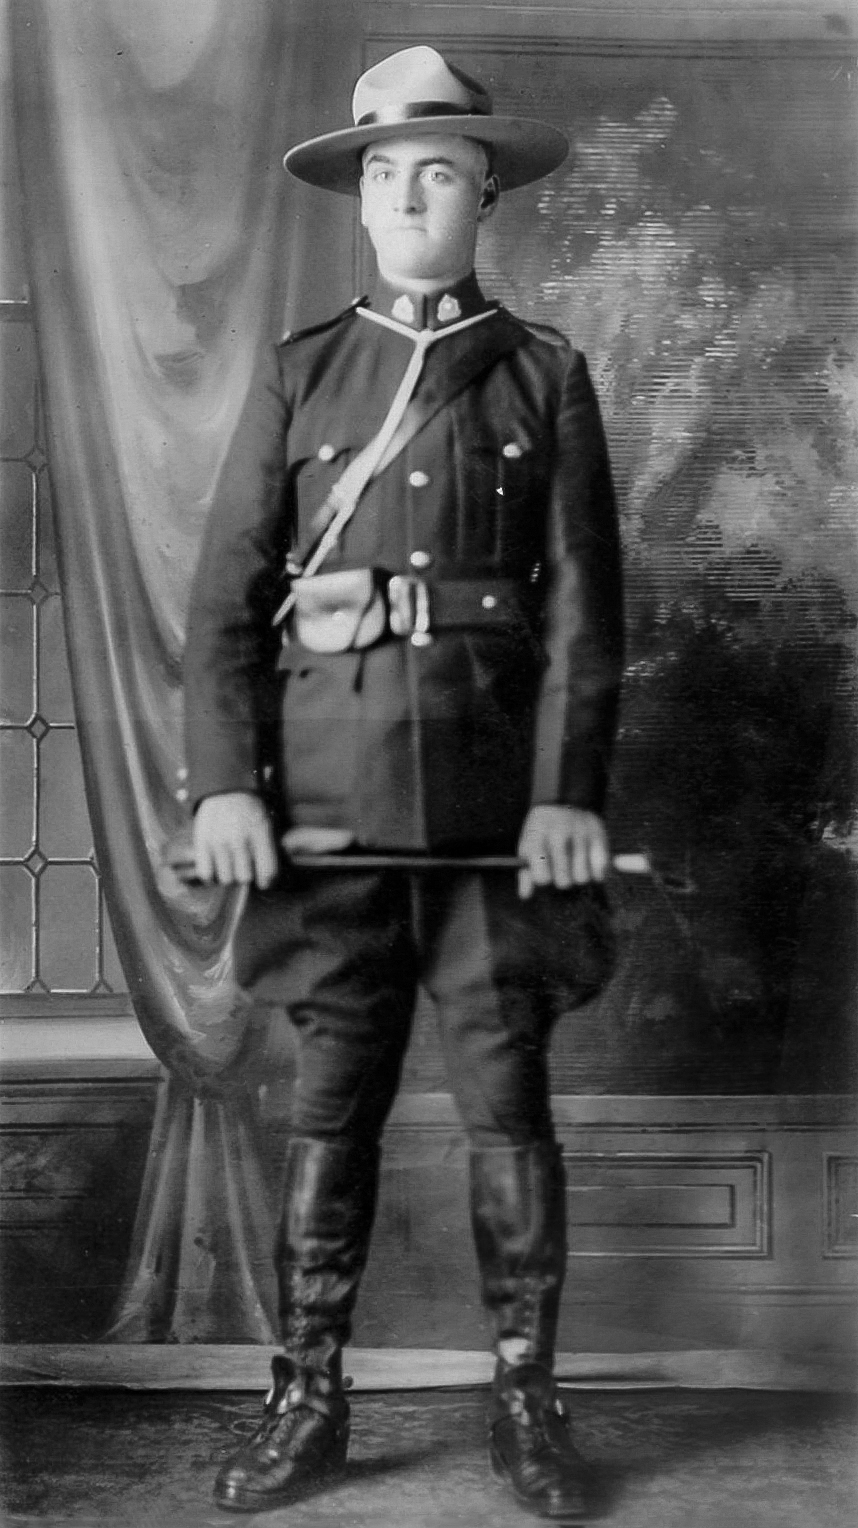 Constable Frederick Rhodes – © Her Majesty the Queen in Right of Canada as represented by the Royal Canadian Mounted Police